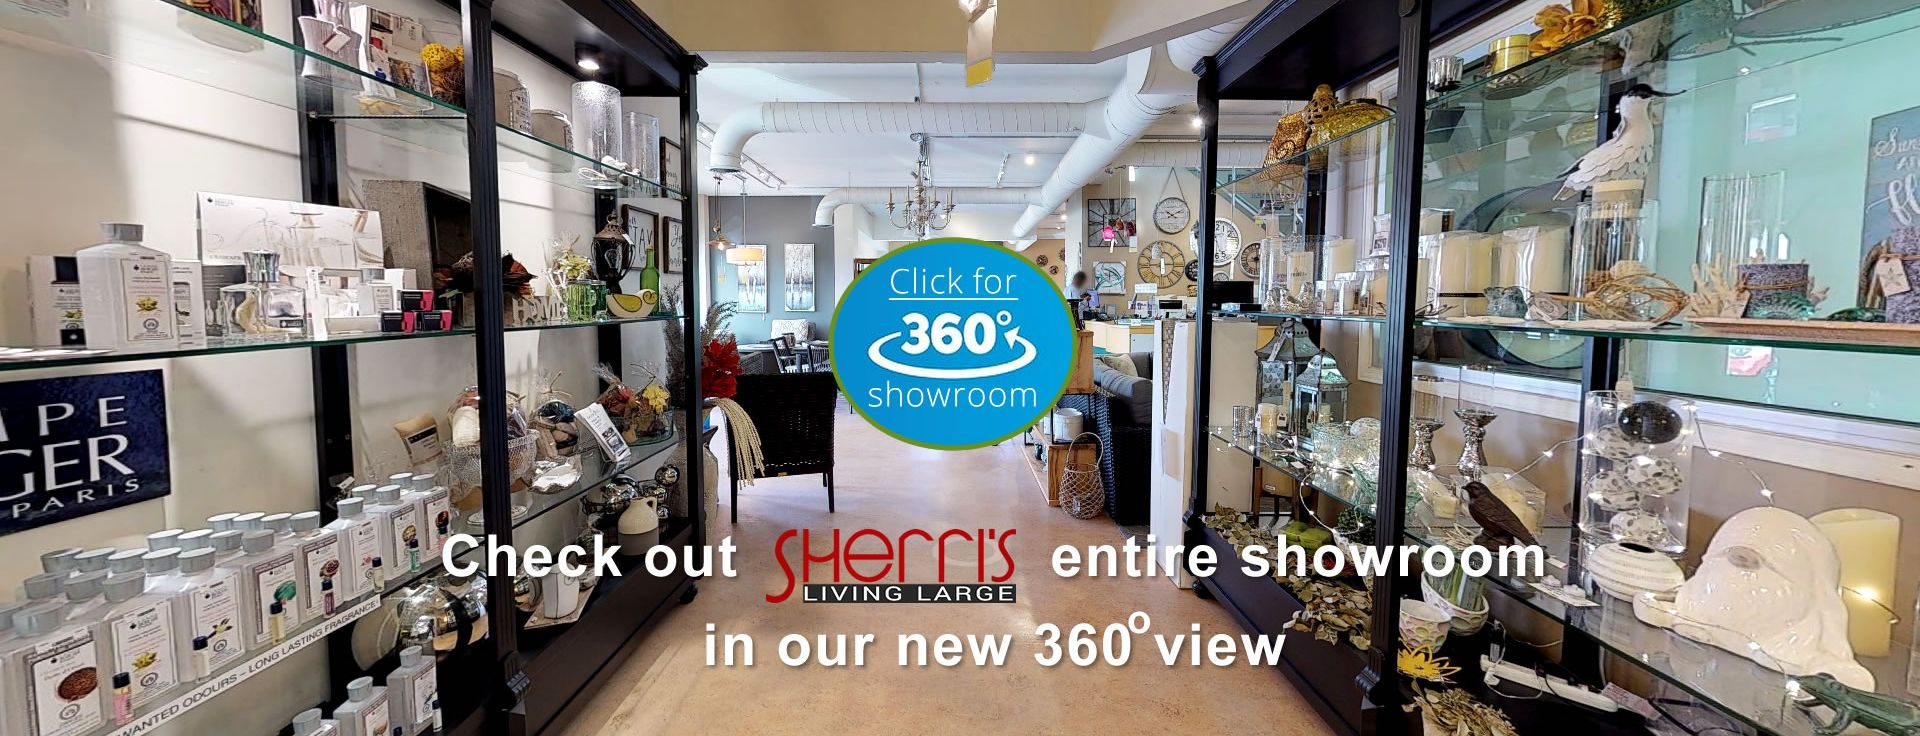 360 showroom view